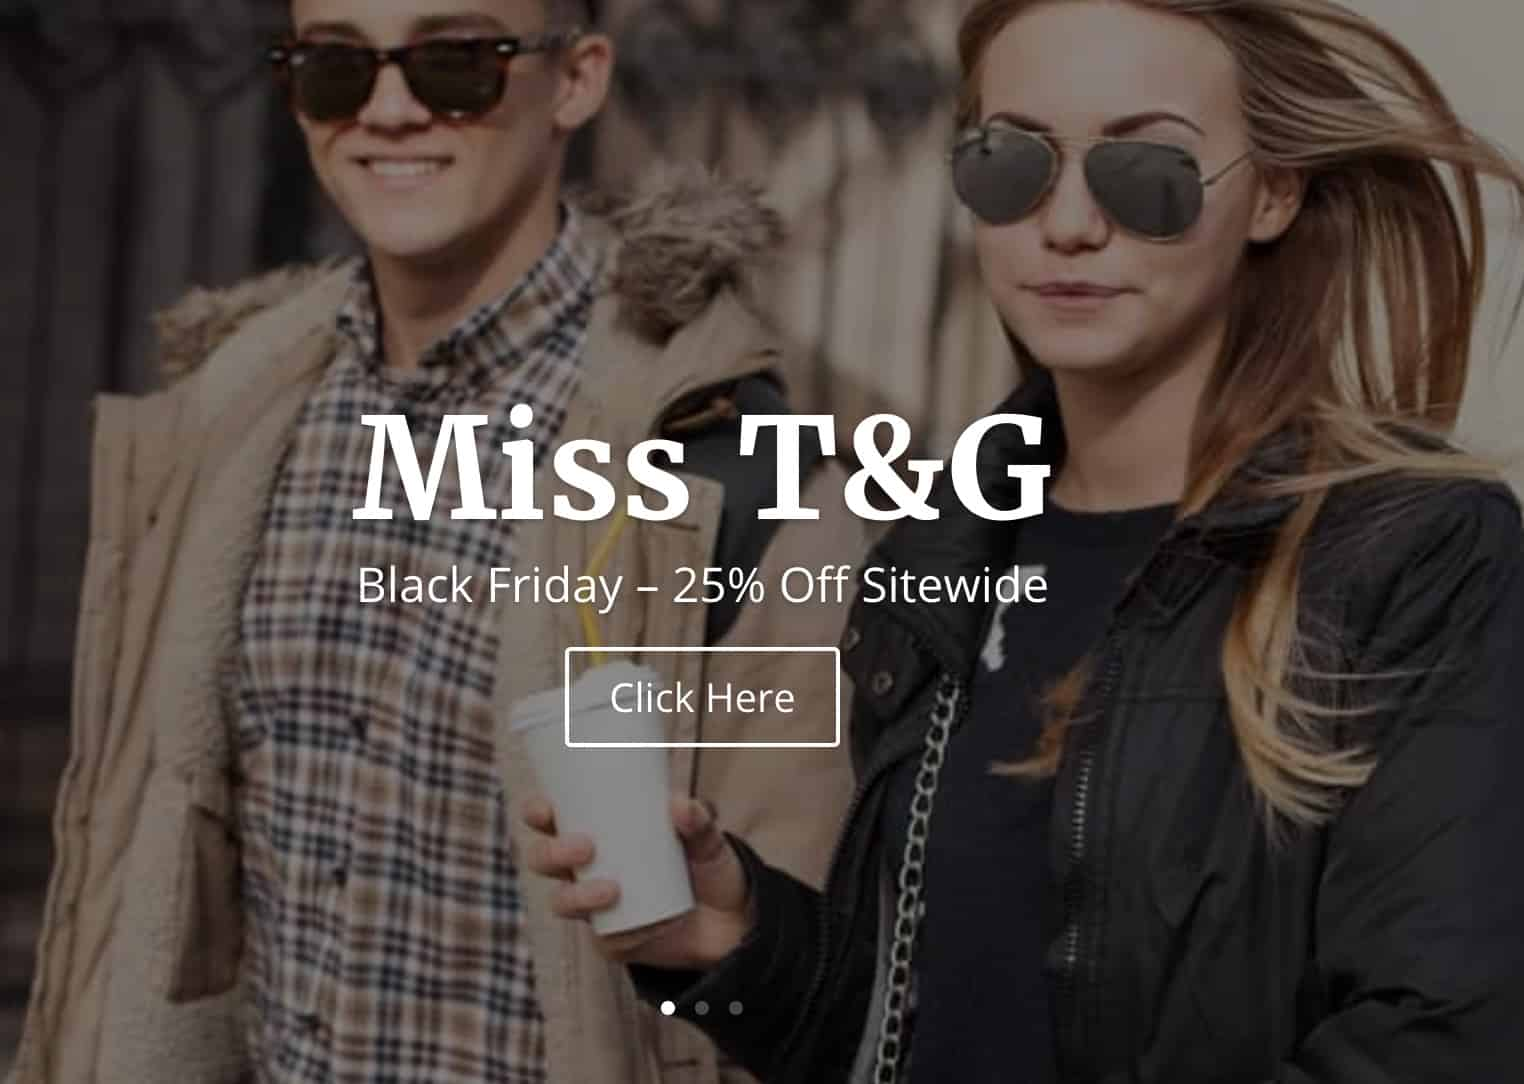 Miss T&G Fashions